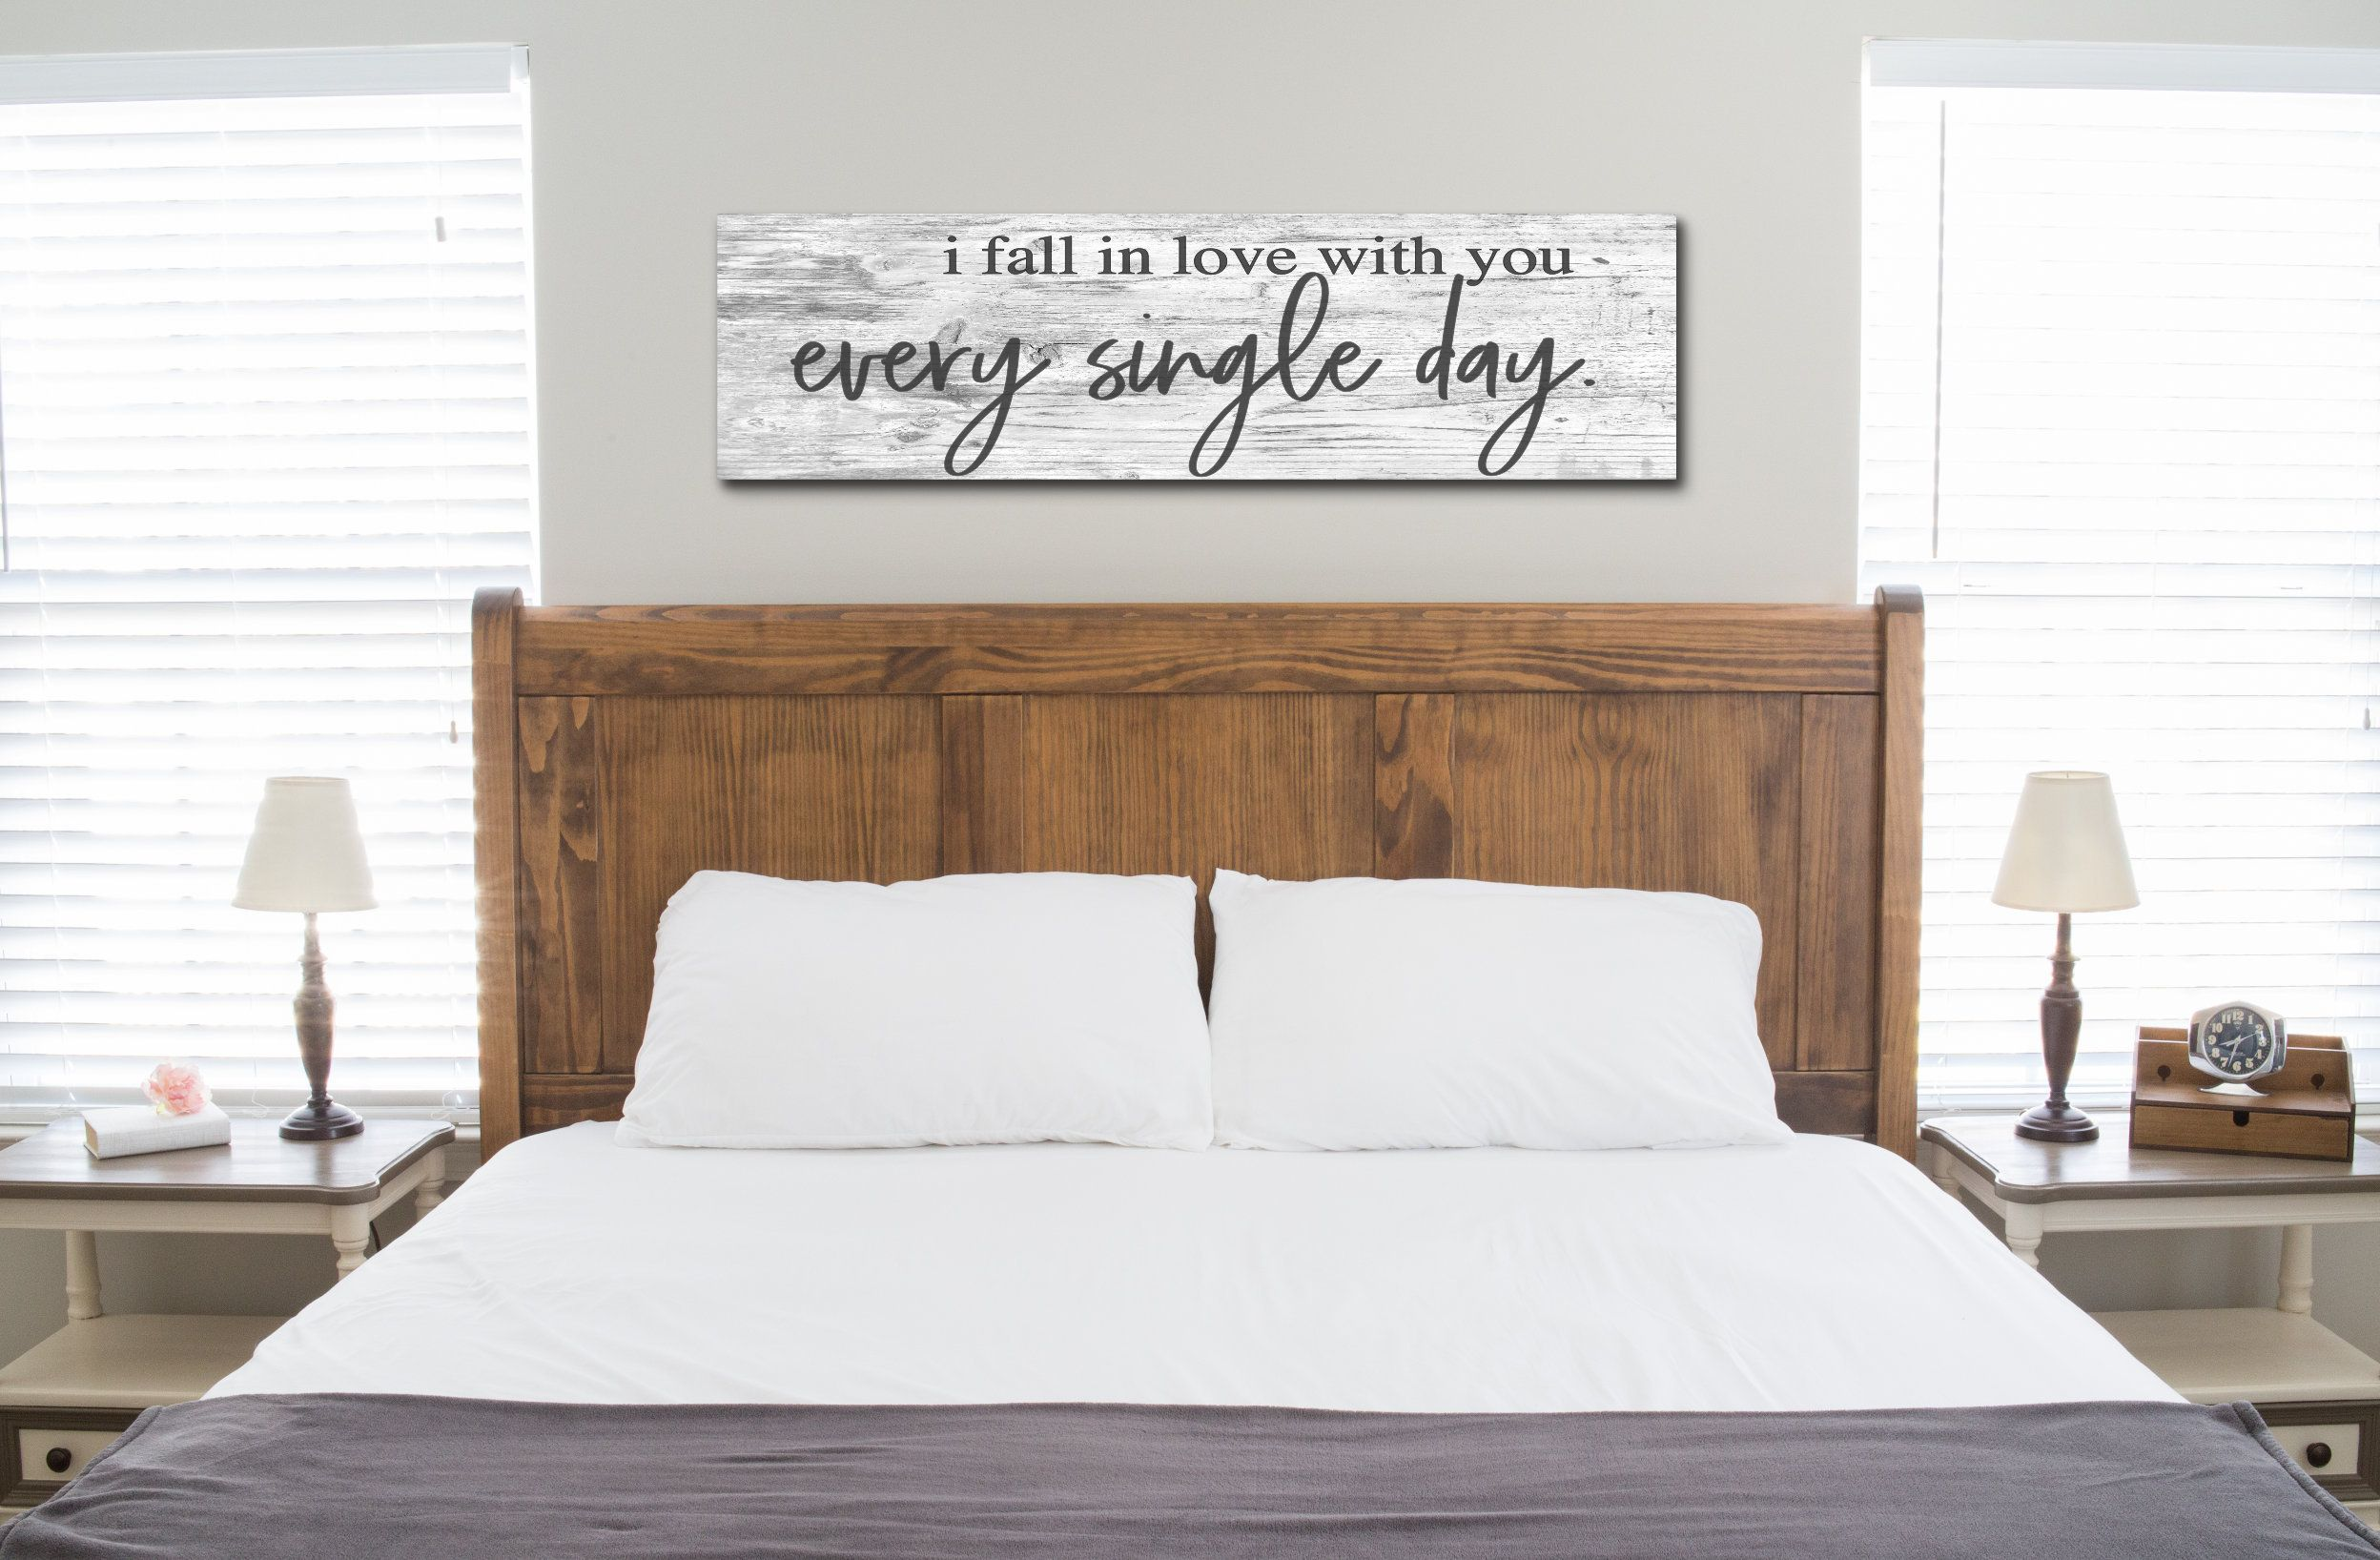 This Rustic Romantic Bedroom Sign Will Give Your Bedroom Space